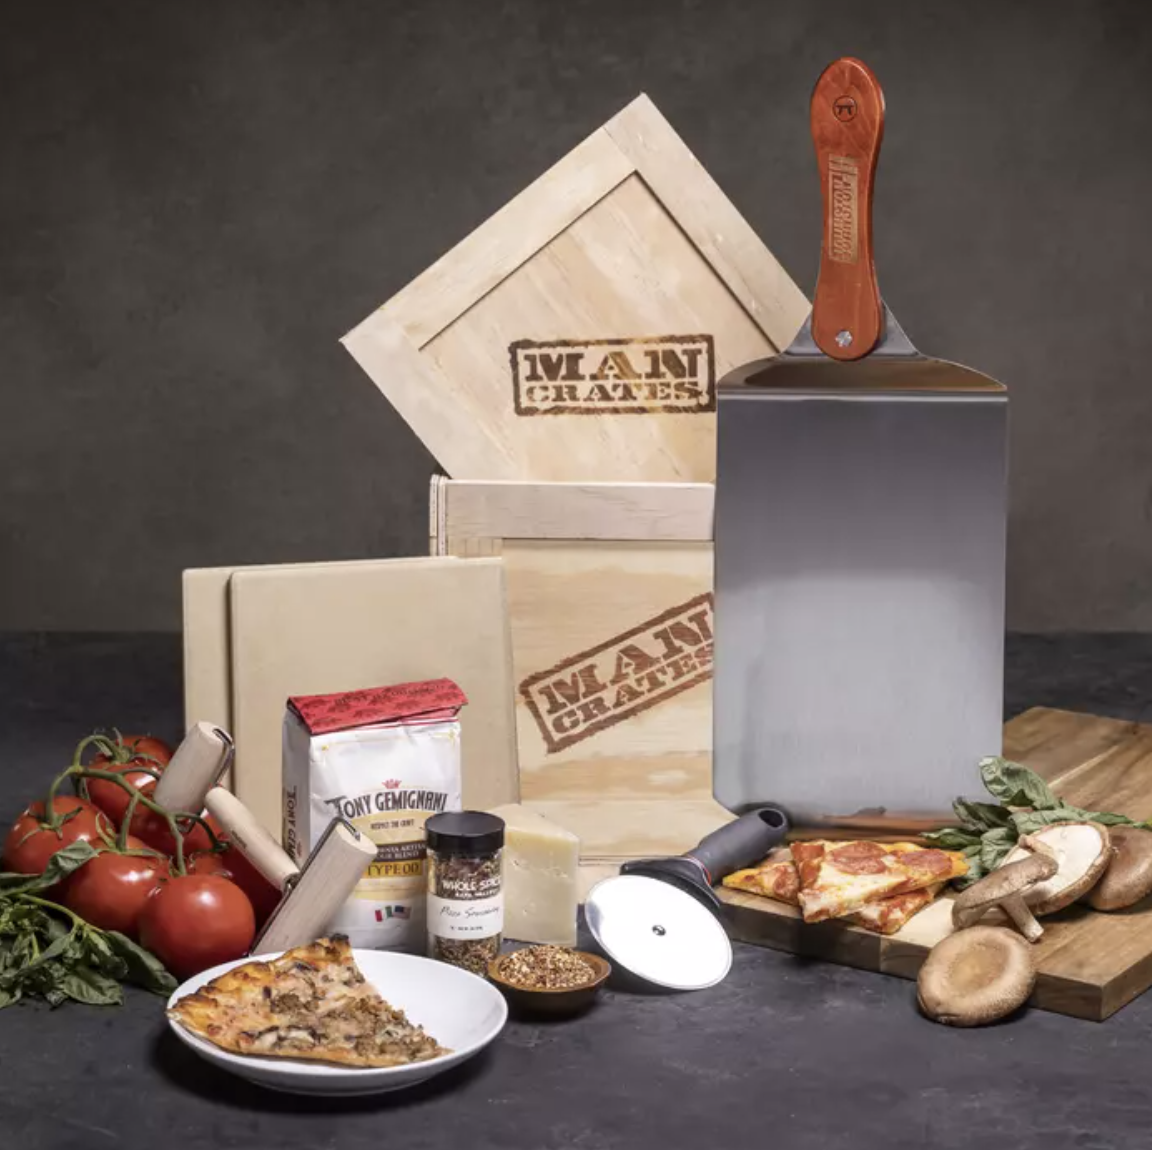 the wood crate with all that's included and random pizza and ingredients around it